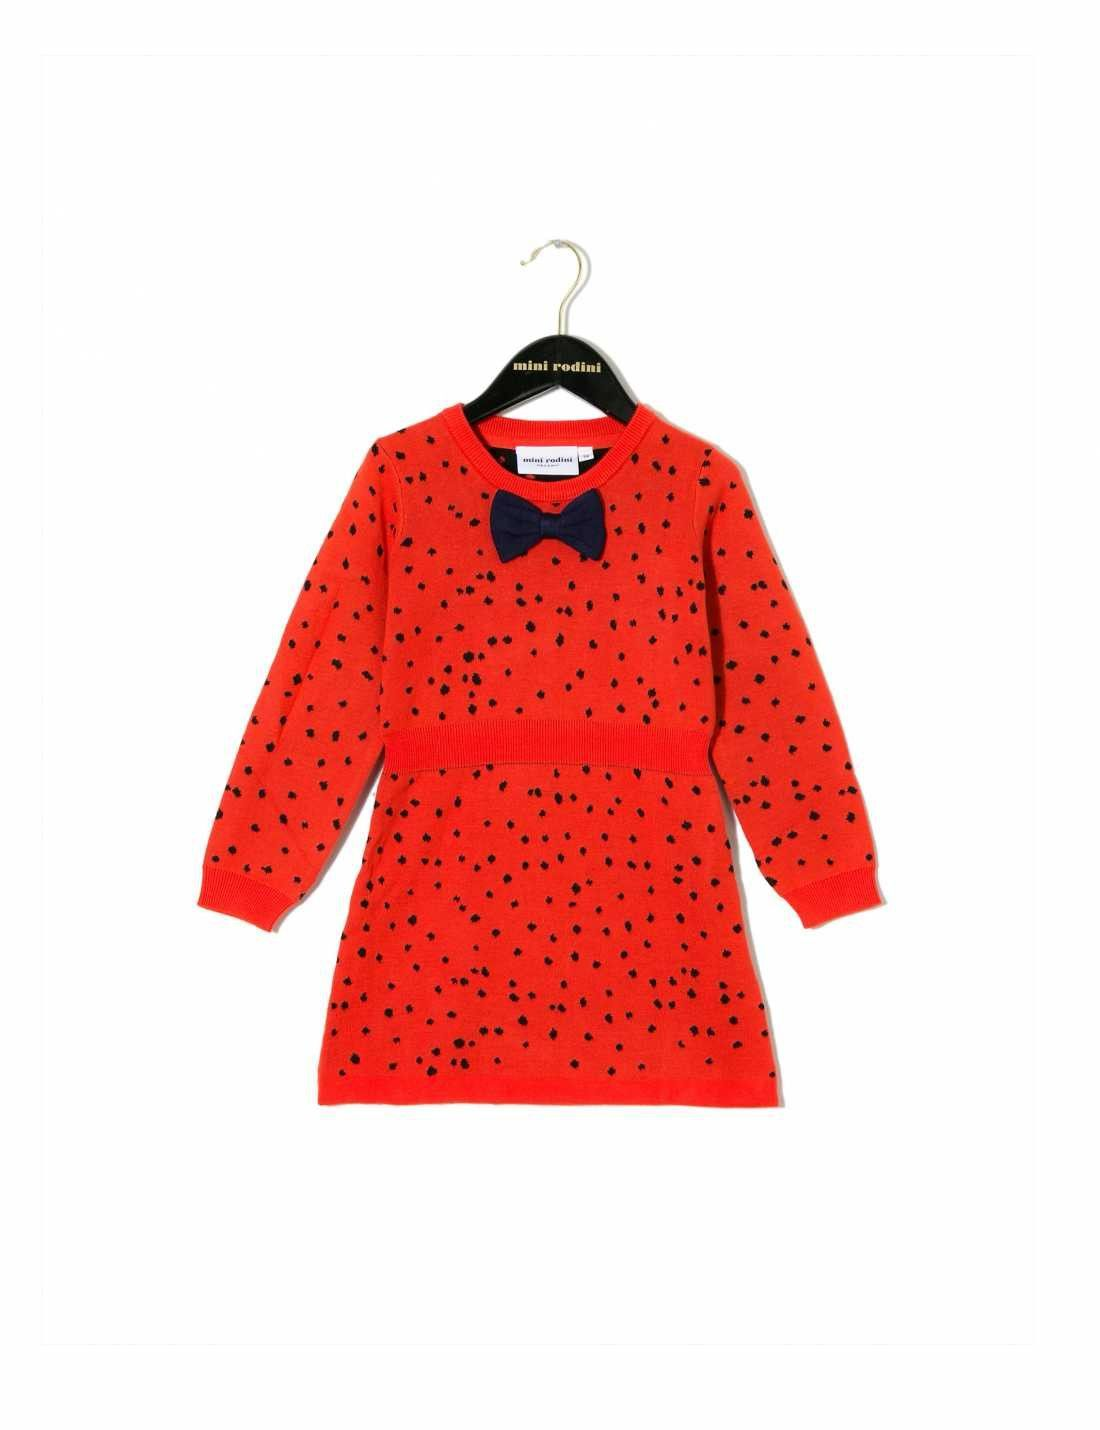 Knitted dress - red